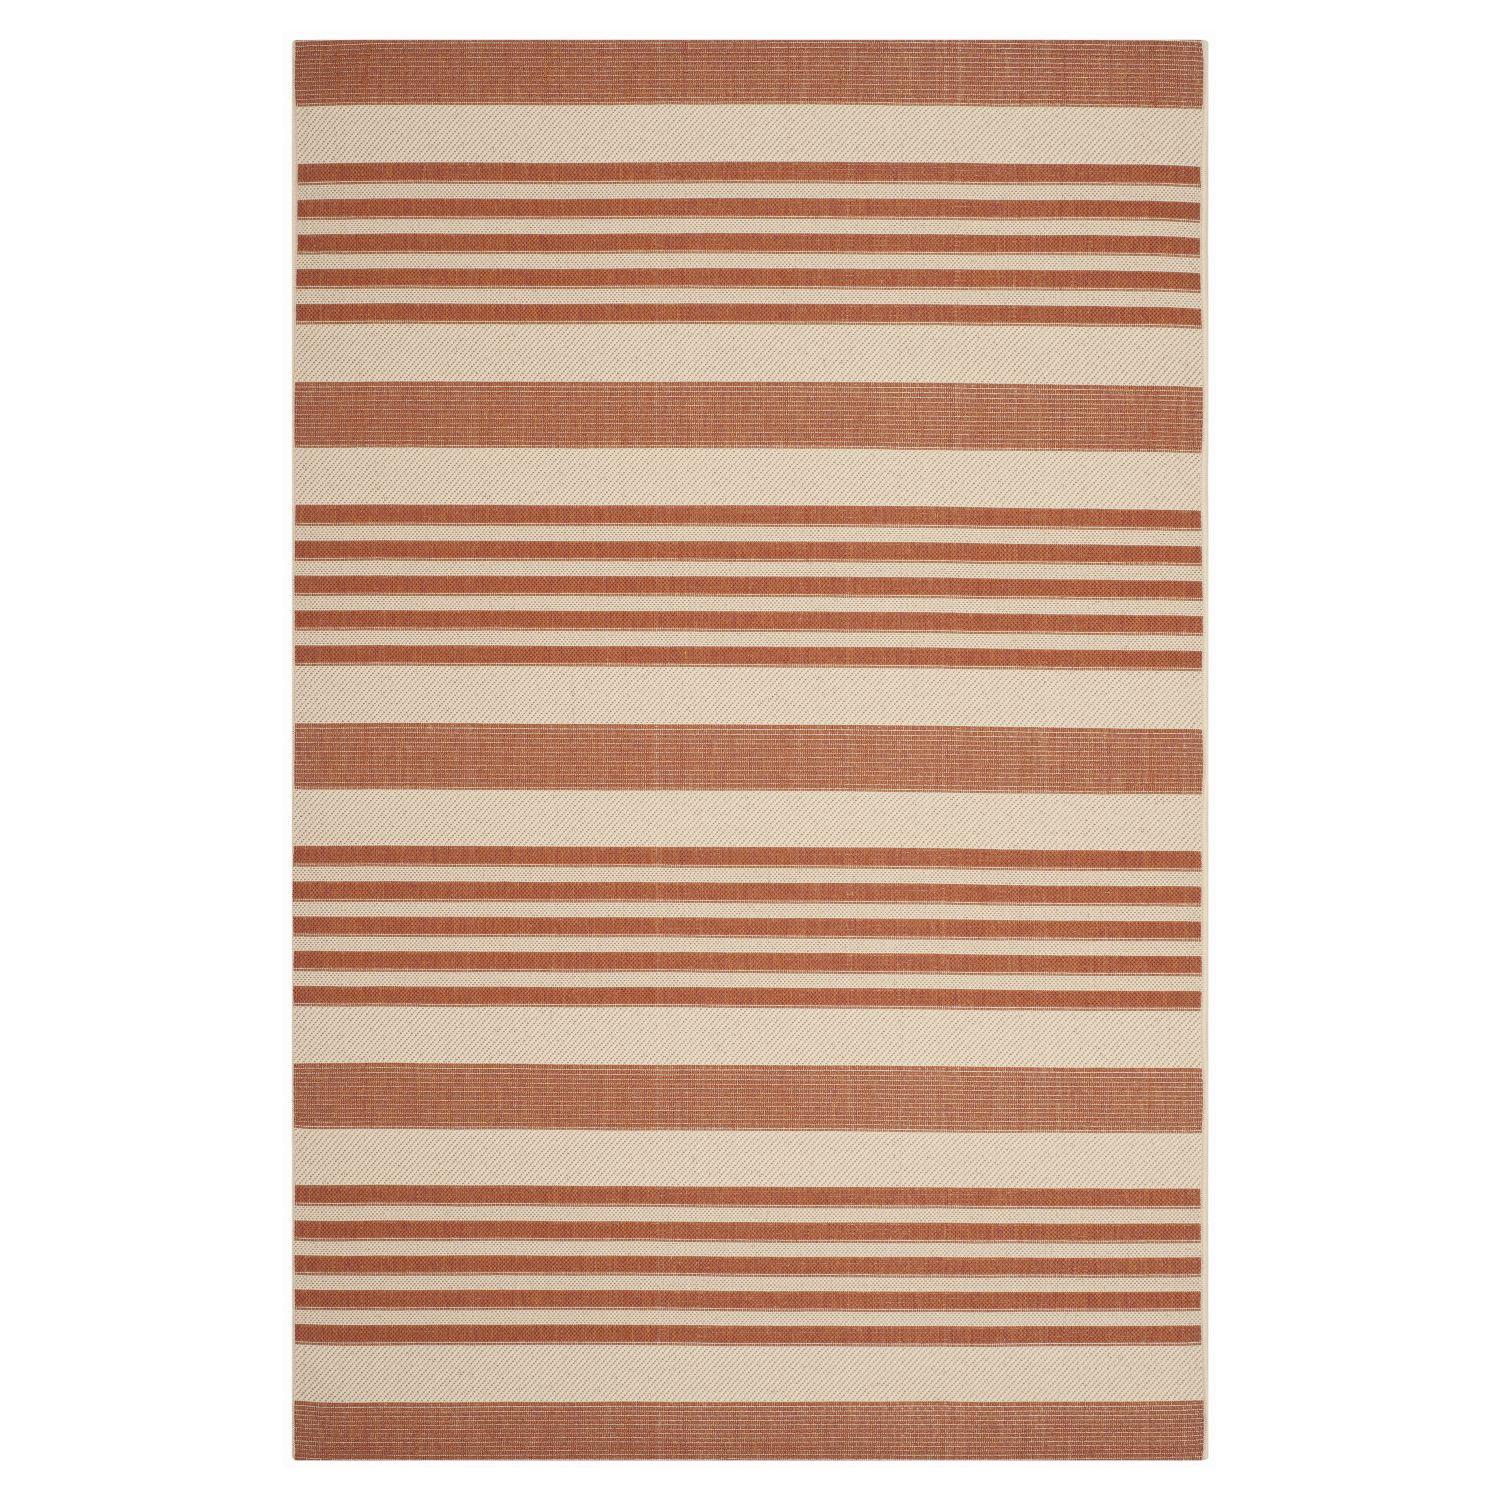 Outdoor Teppich Terracotta In Outdoorteppich Gemma Terracotta Beige 161 X 232 Cm